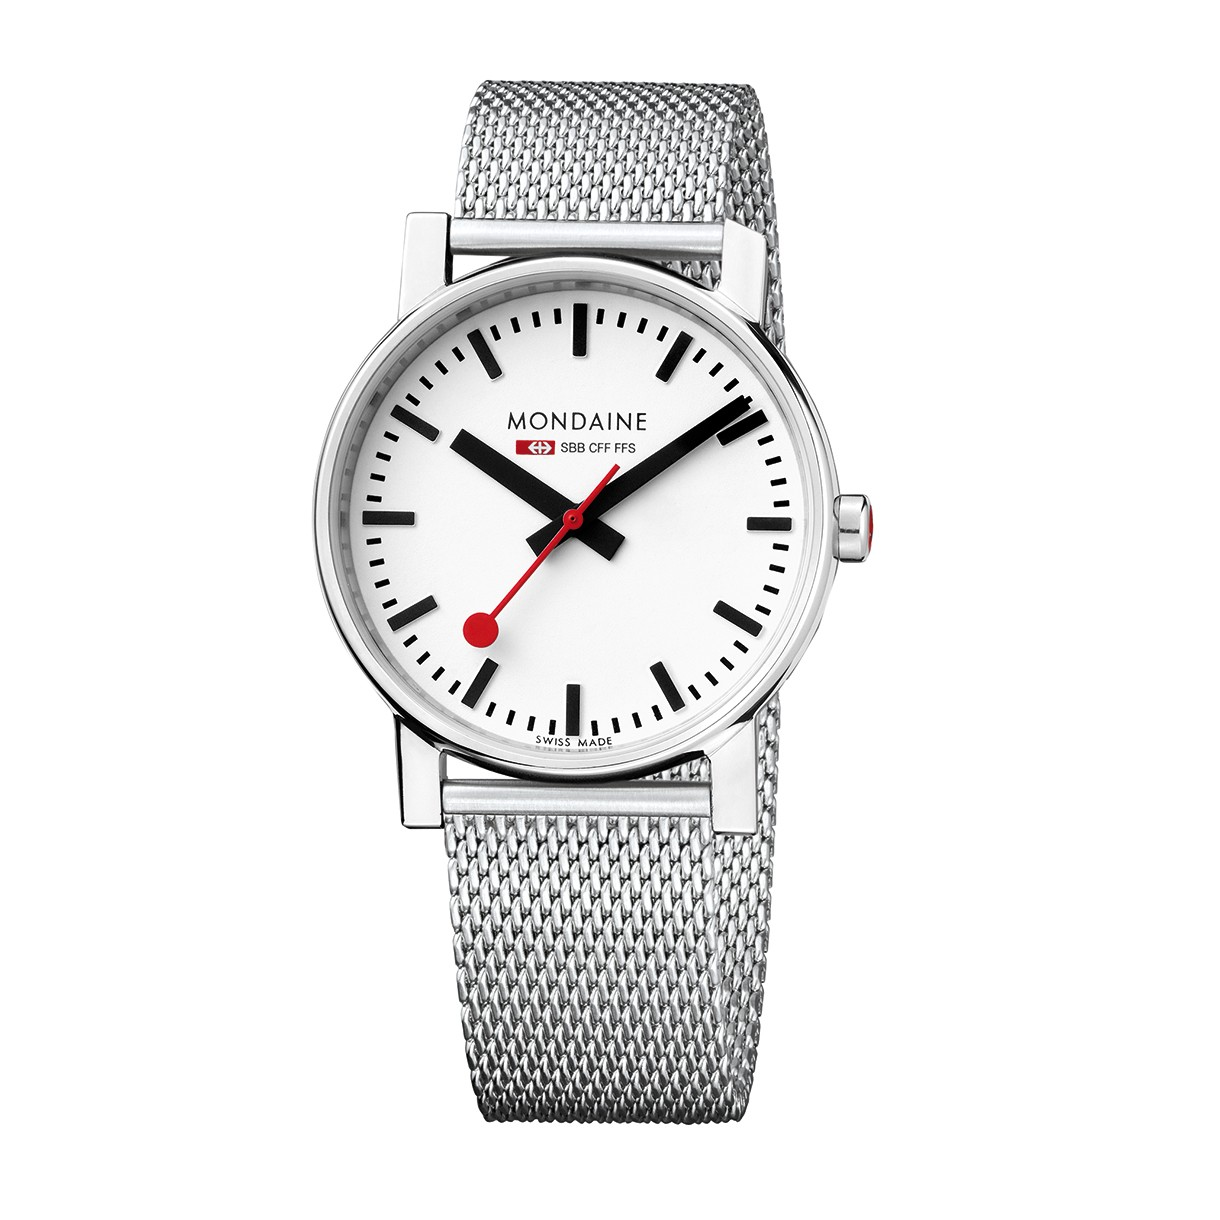 Mondaine swiss watch EVO GENTS - A658.30300.11SBV